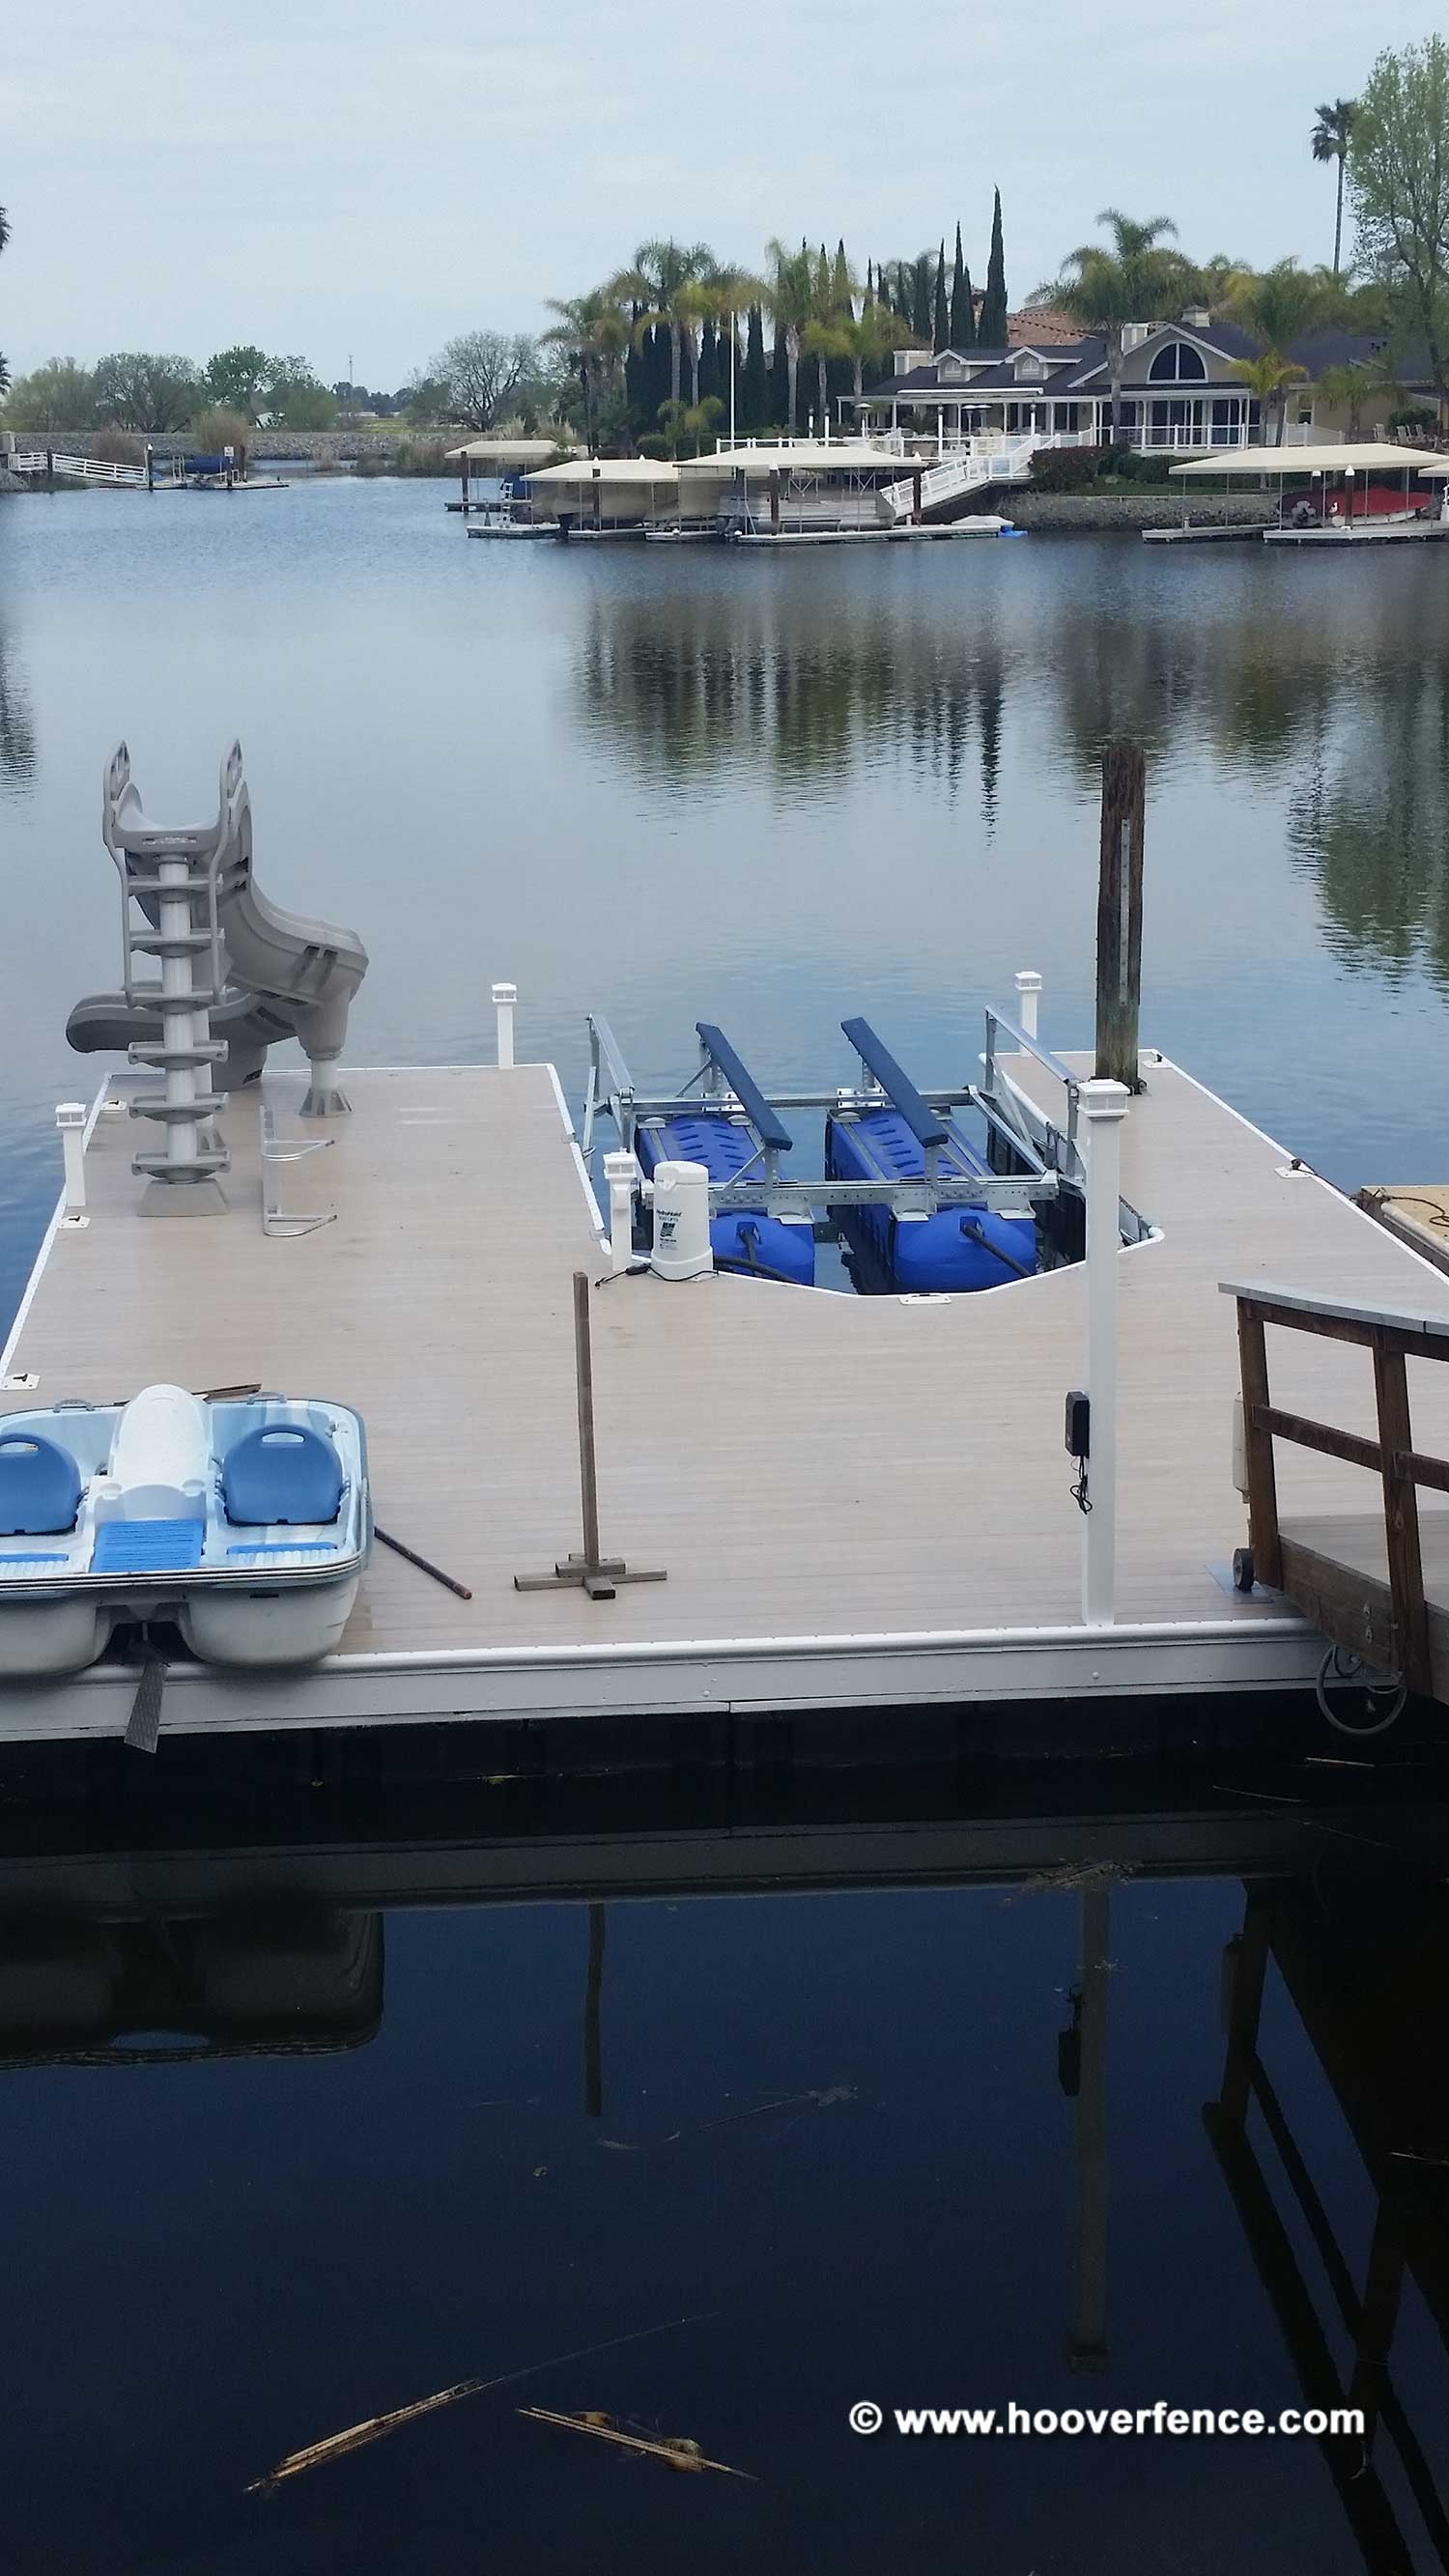 Customer Install - Aurora Deck Lighting 4x4 Titan Low Voltage LED Lighting Post Cap Installed on Dock